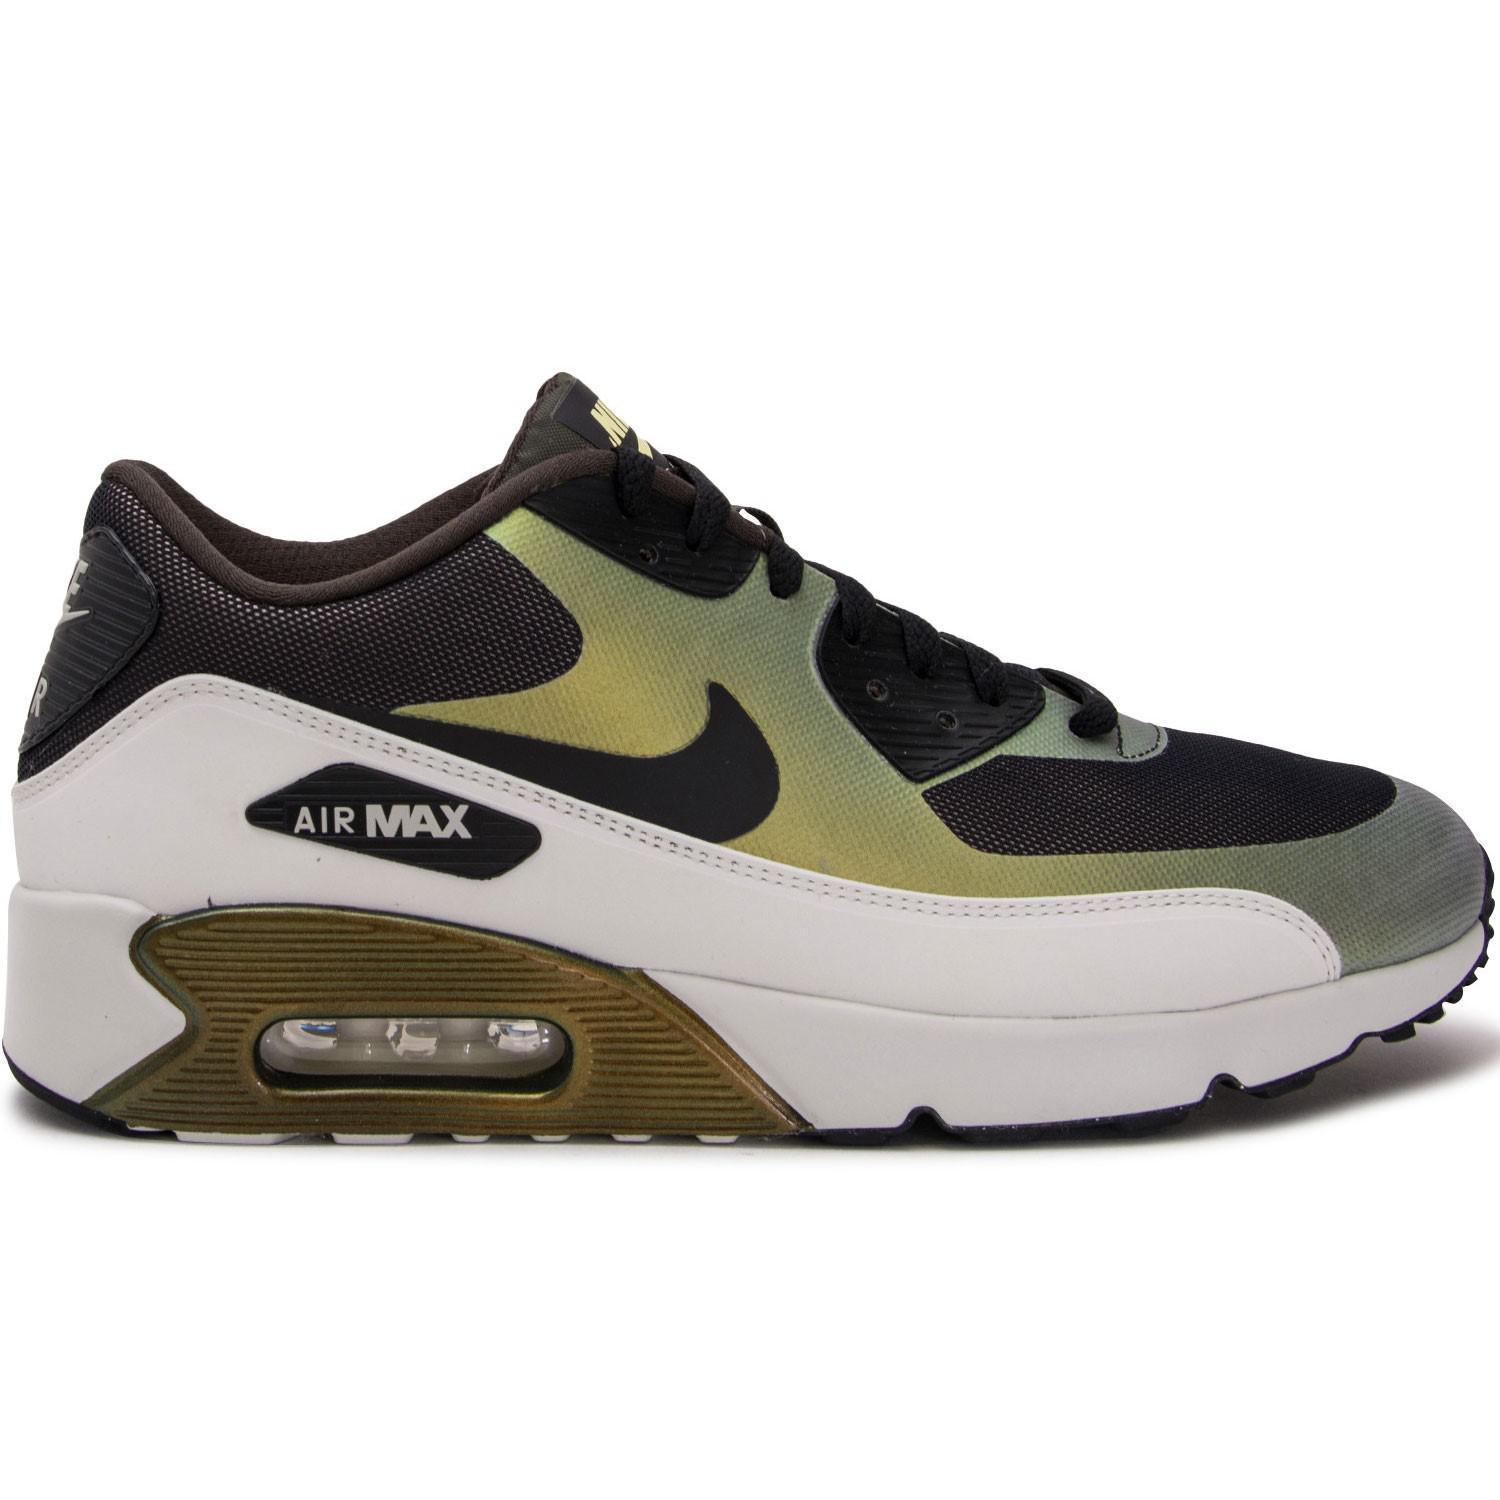 bffbe5e4a2 Gallery. Previously sold at: Jet.com · Men's Air Max 90 Sneakers